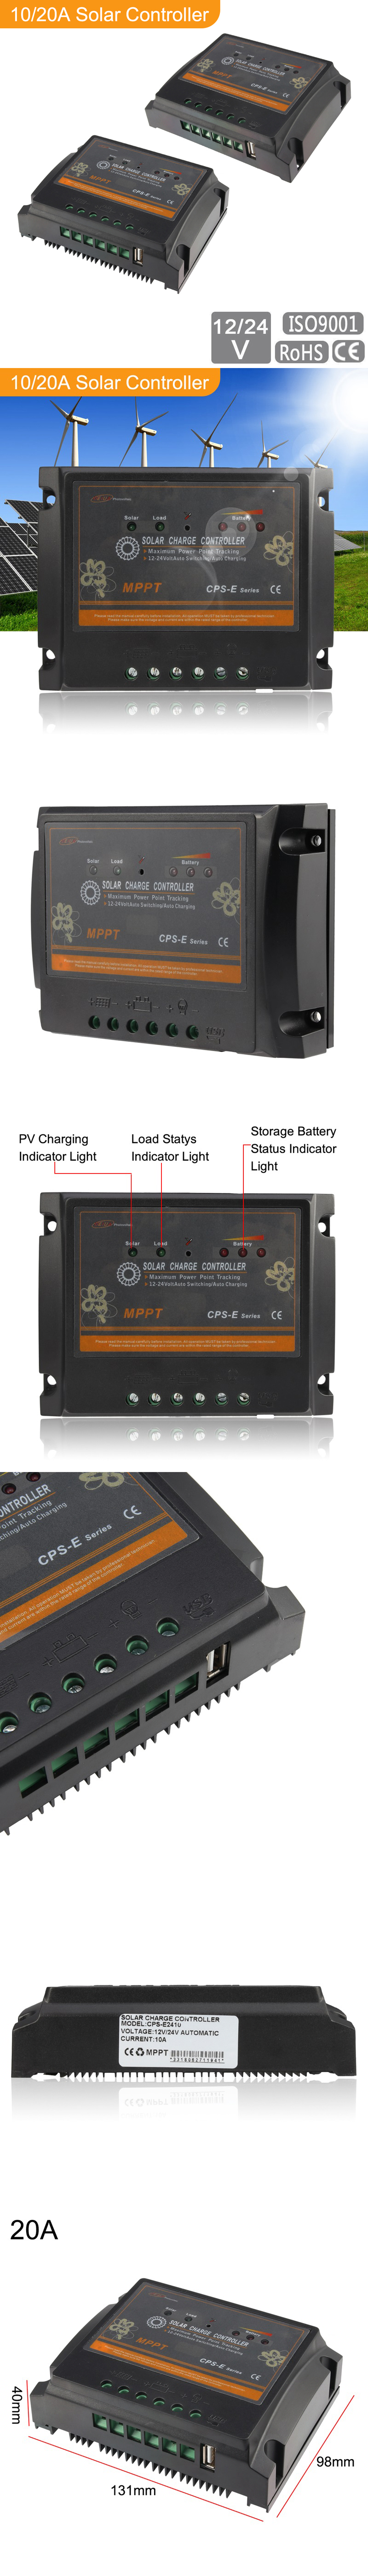 Mppt Solar Panel Regulator Charge Controller 10 20a Cps Specifics Features